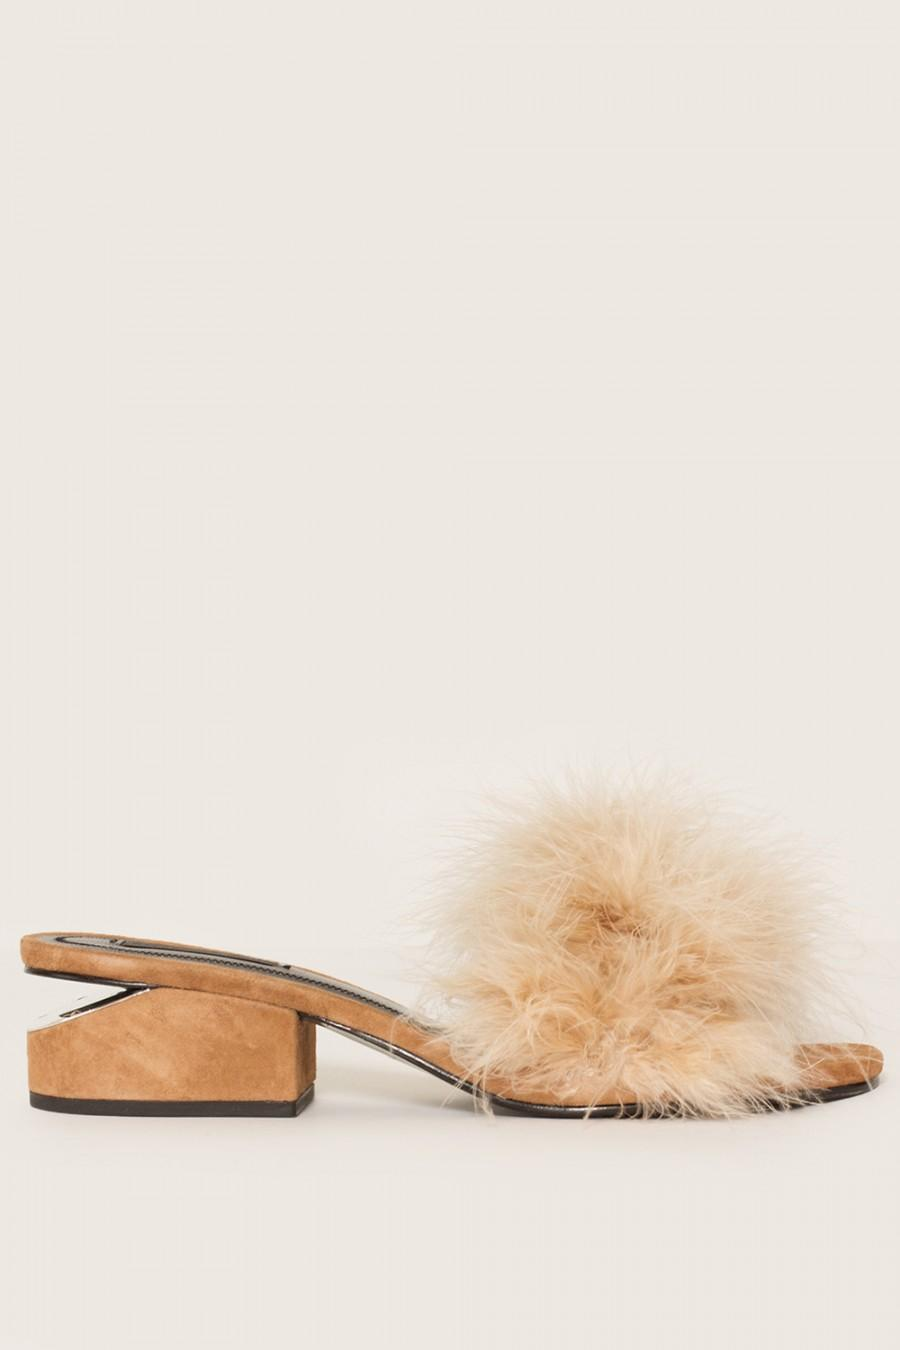 ALEXANDER WANG Lou Suede And Feather Slip-On Sandals at MADISON LOS ANGELES